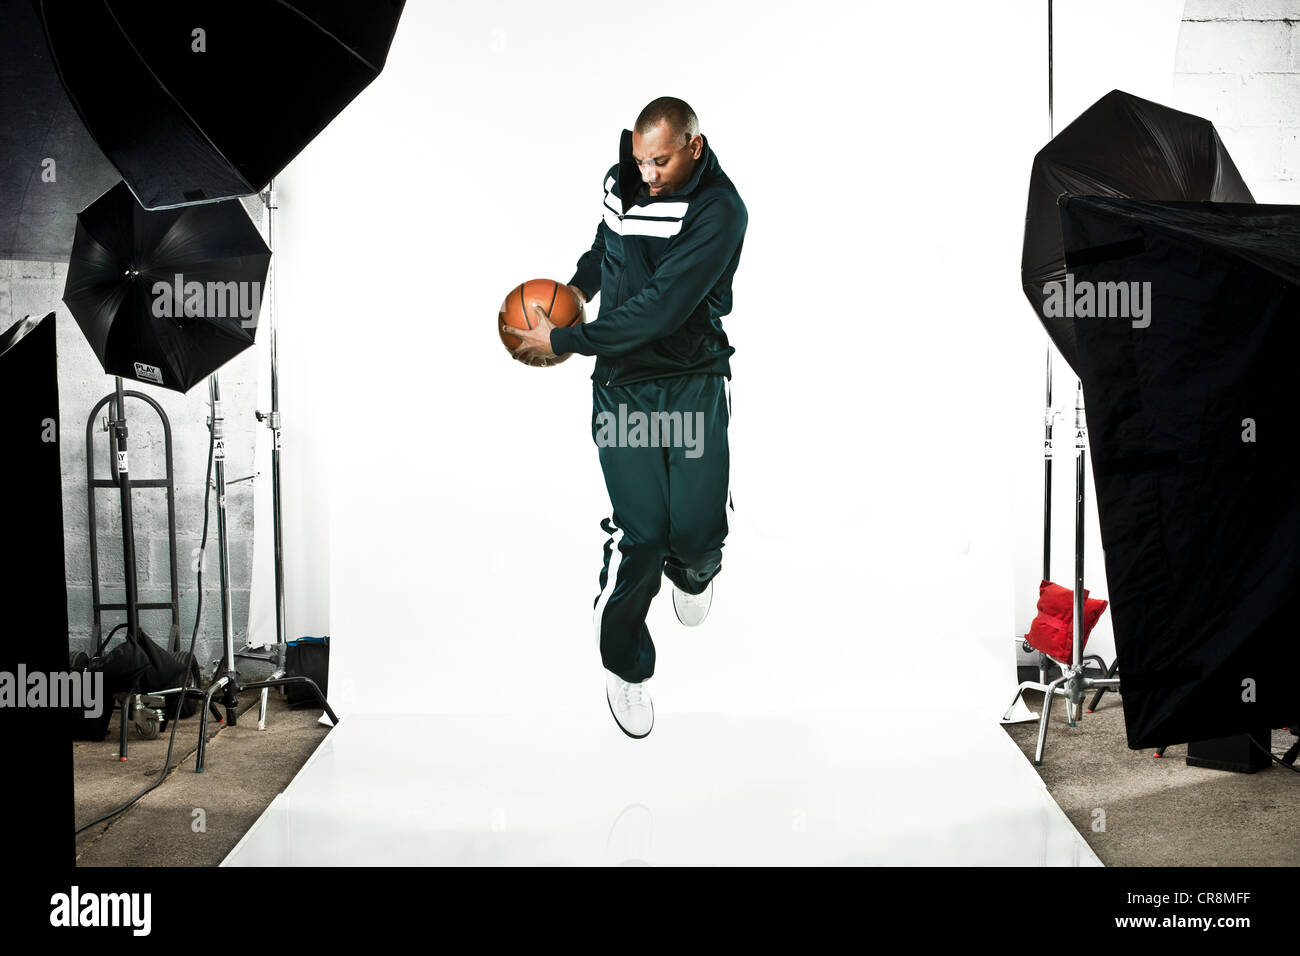 Basketball player at photo shoot - Stock Image